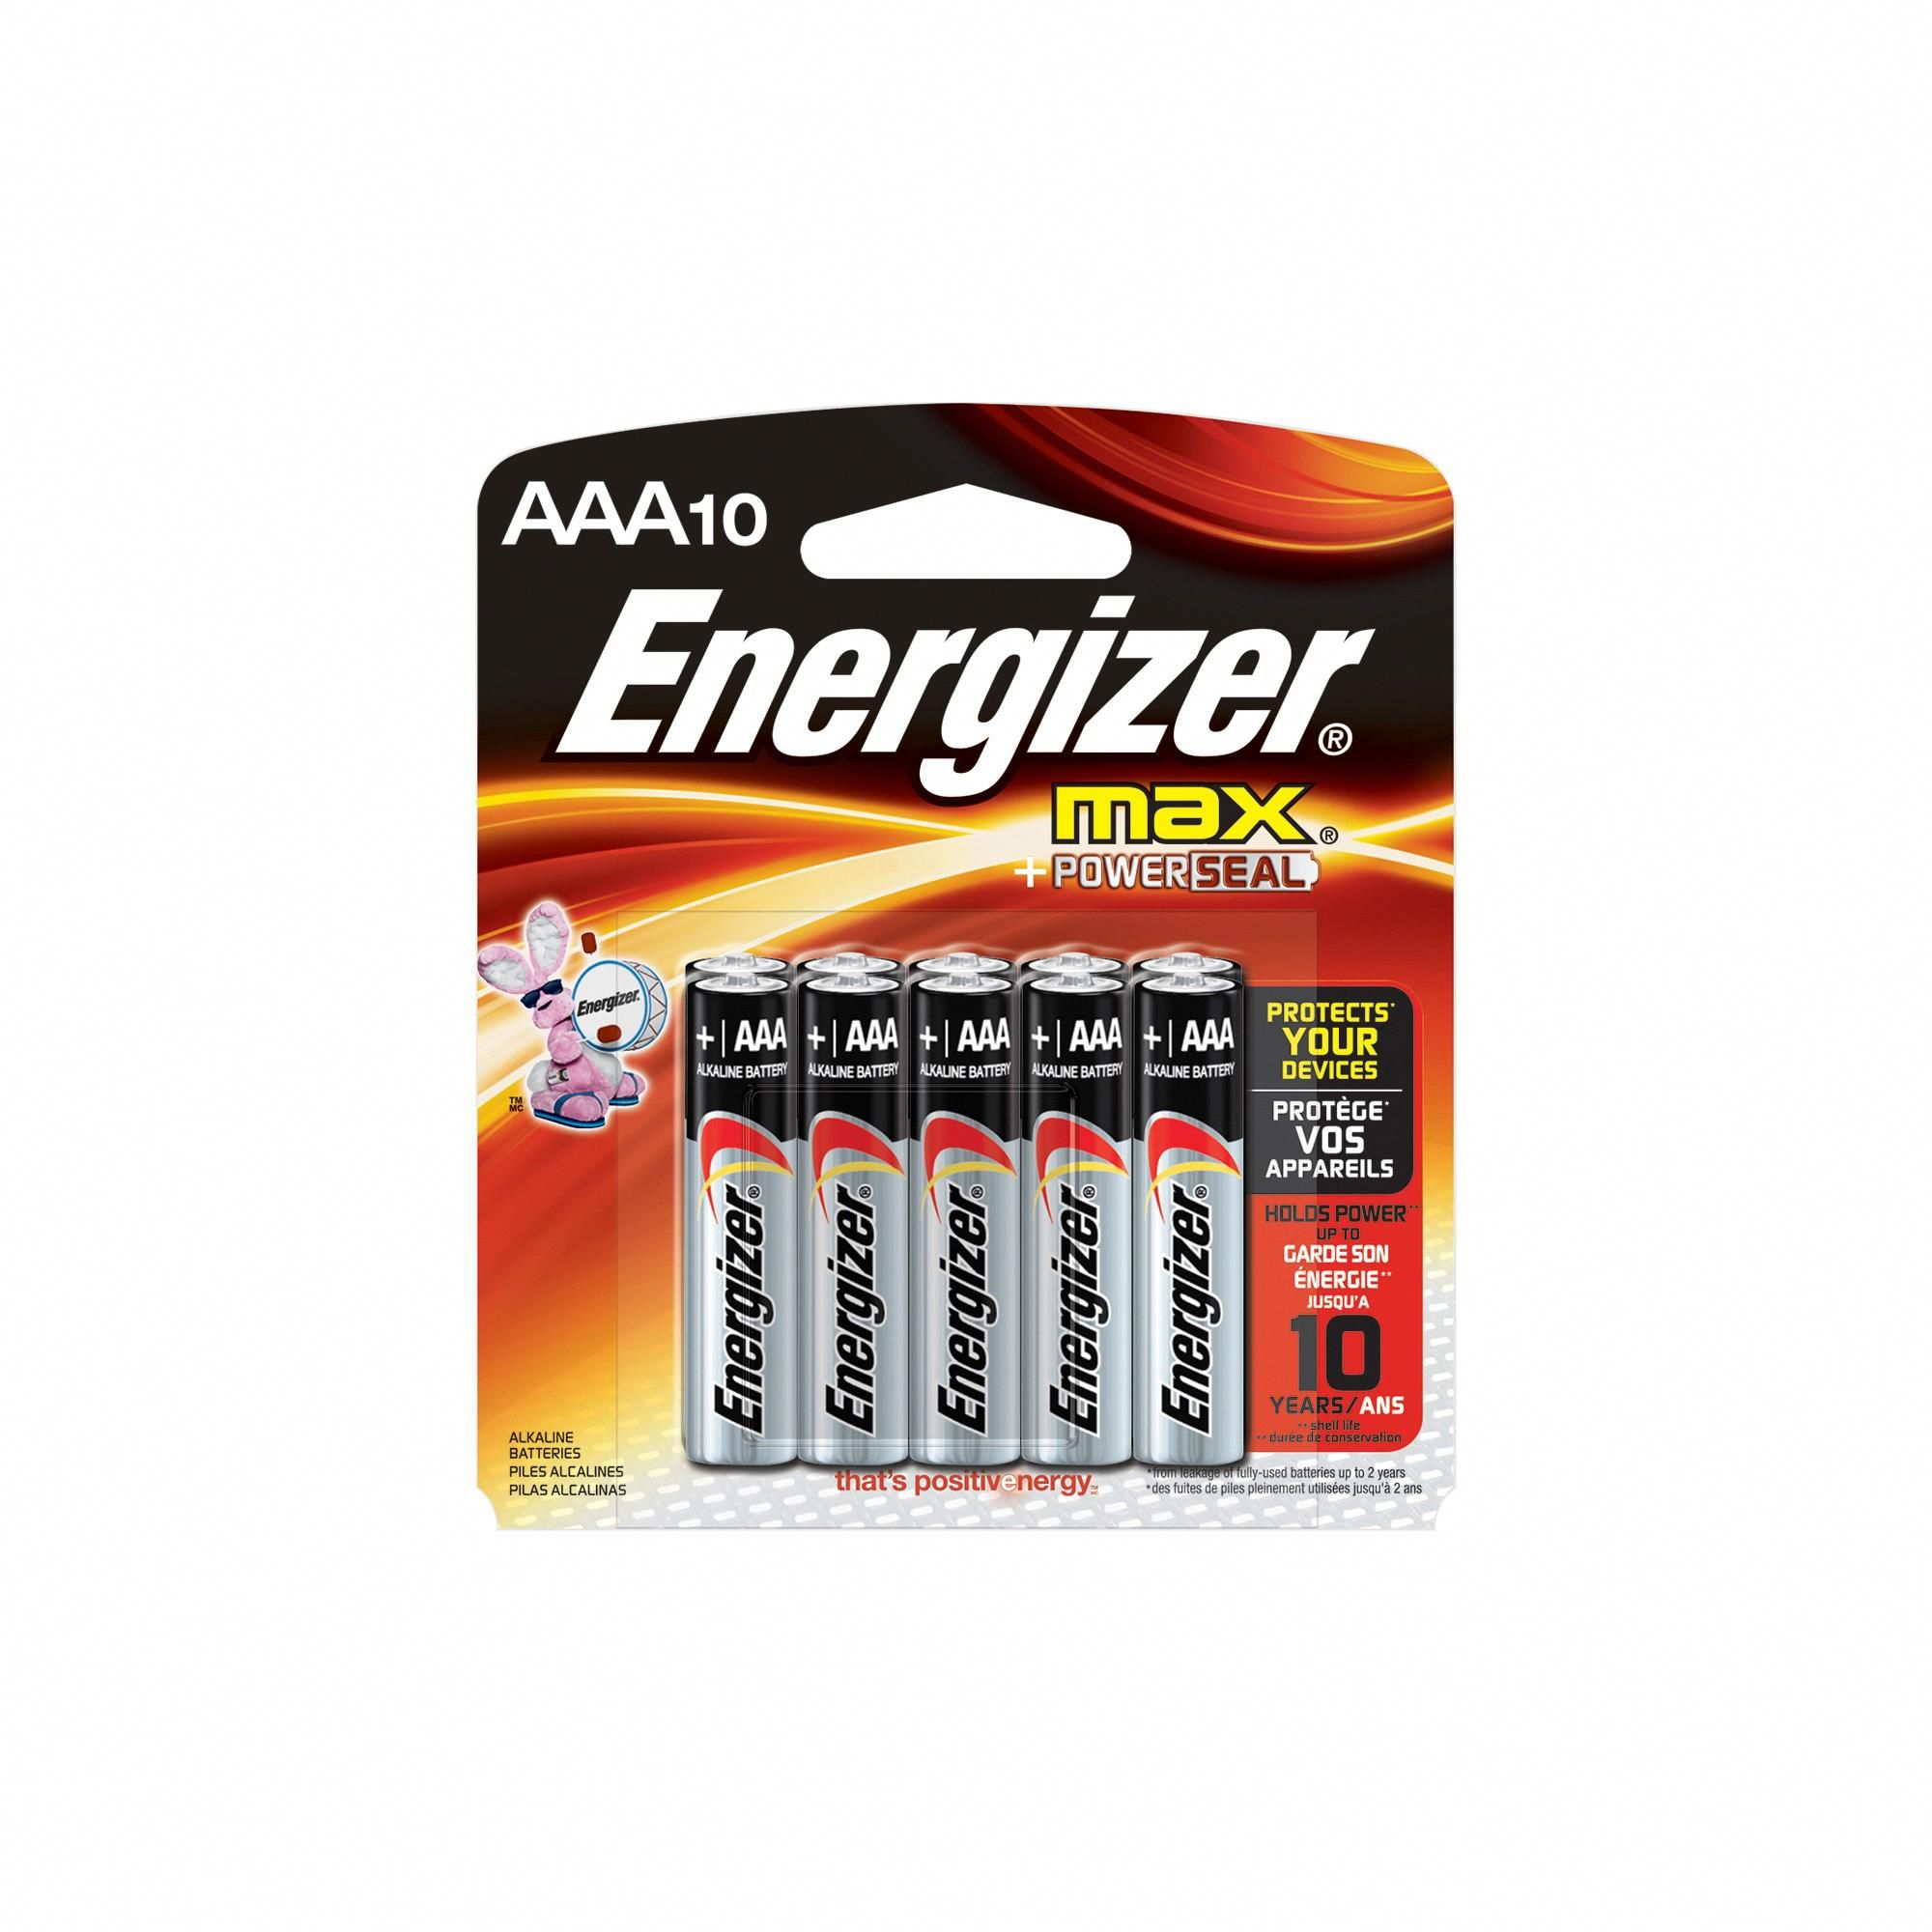 Energizer Max Aaa Batteries 10 Ct Silver Bestpestcontrolproductforhome Bestpestcontrolsprayforhomes Bestpestcontrol Energizer Energizer Battery Helpful Hints